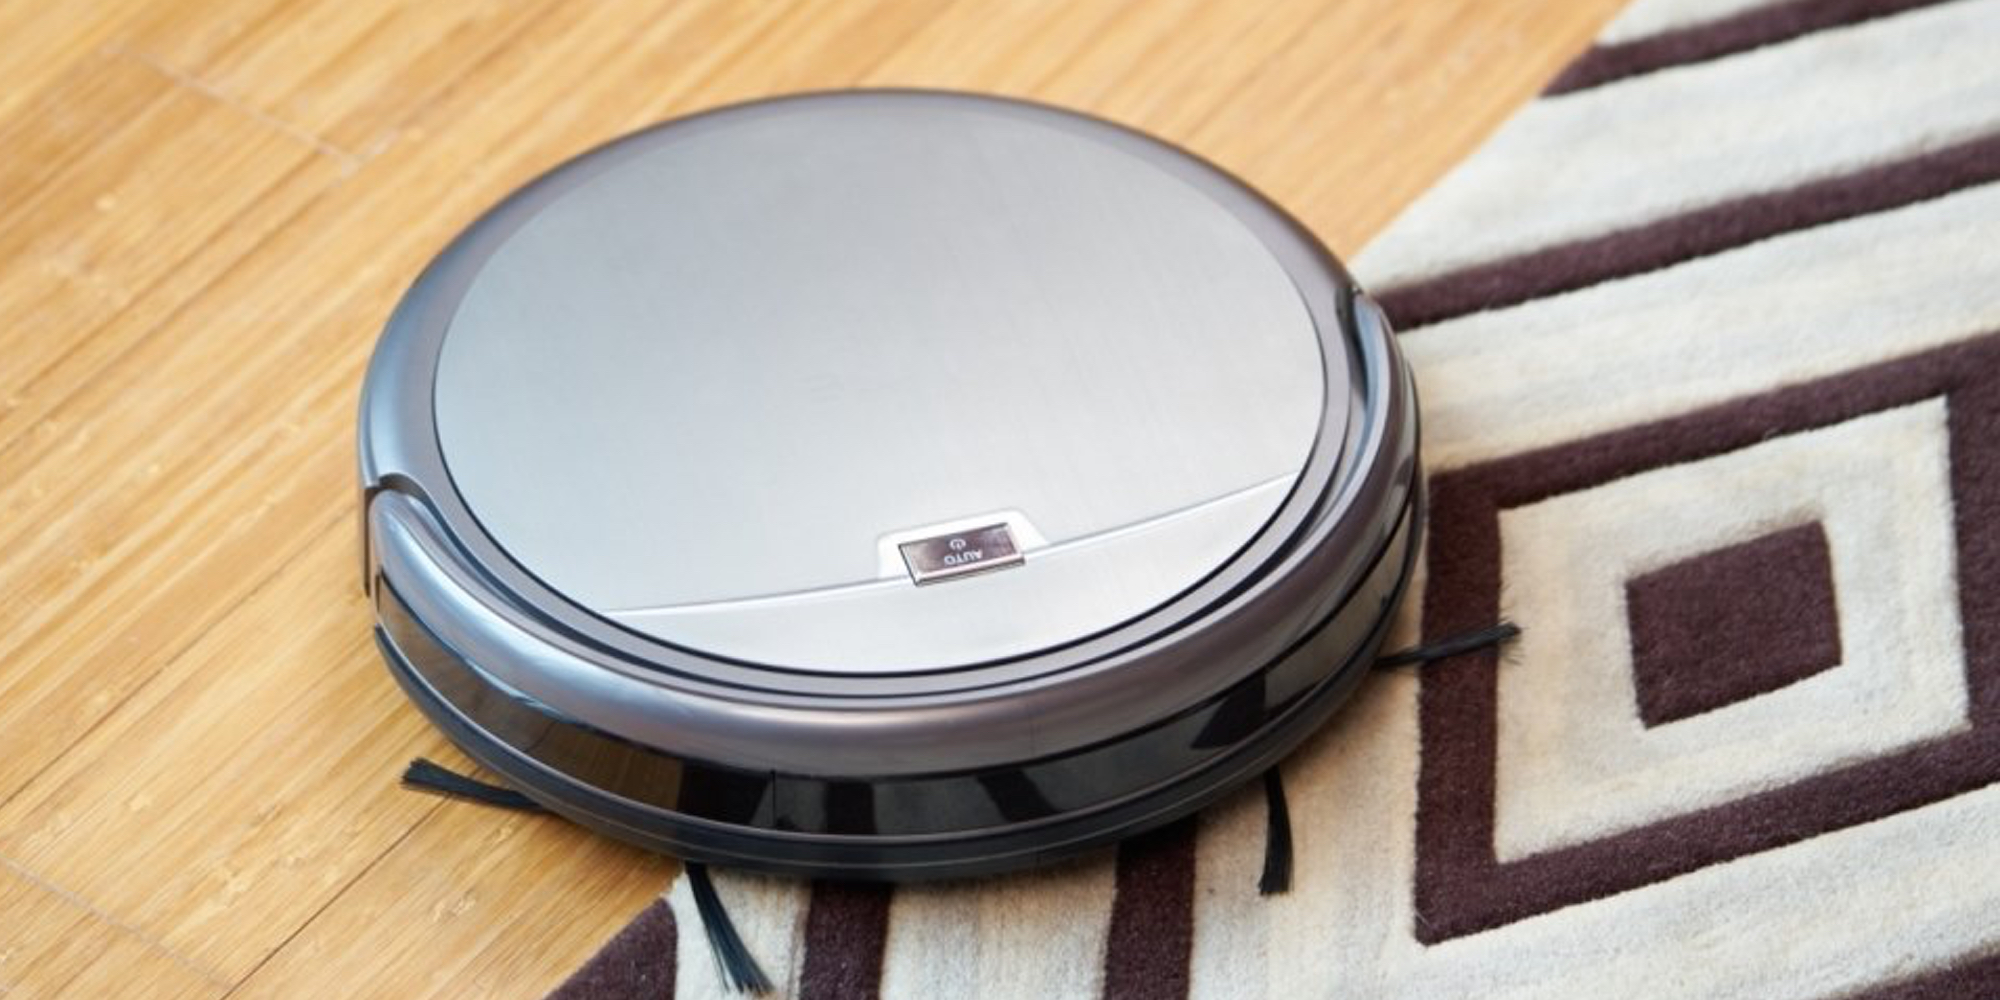 Let ILIFE's A4s Robotic Vacuum Cleaner pick up after you for $130 (Reg. $200)